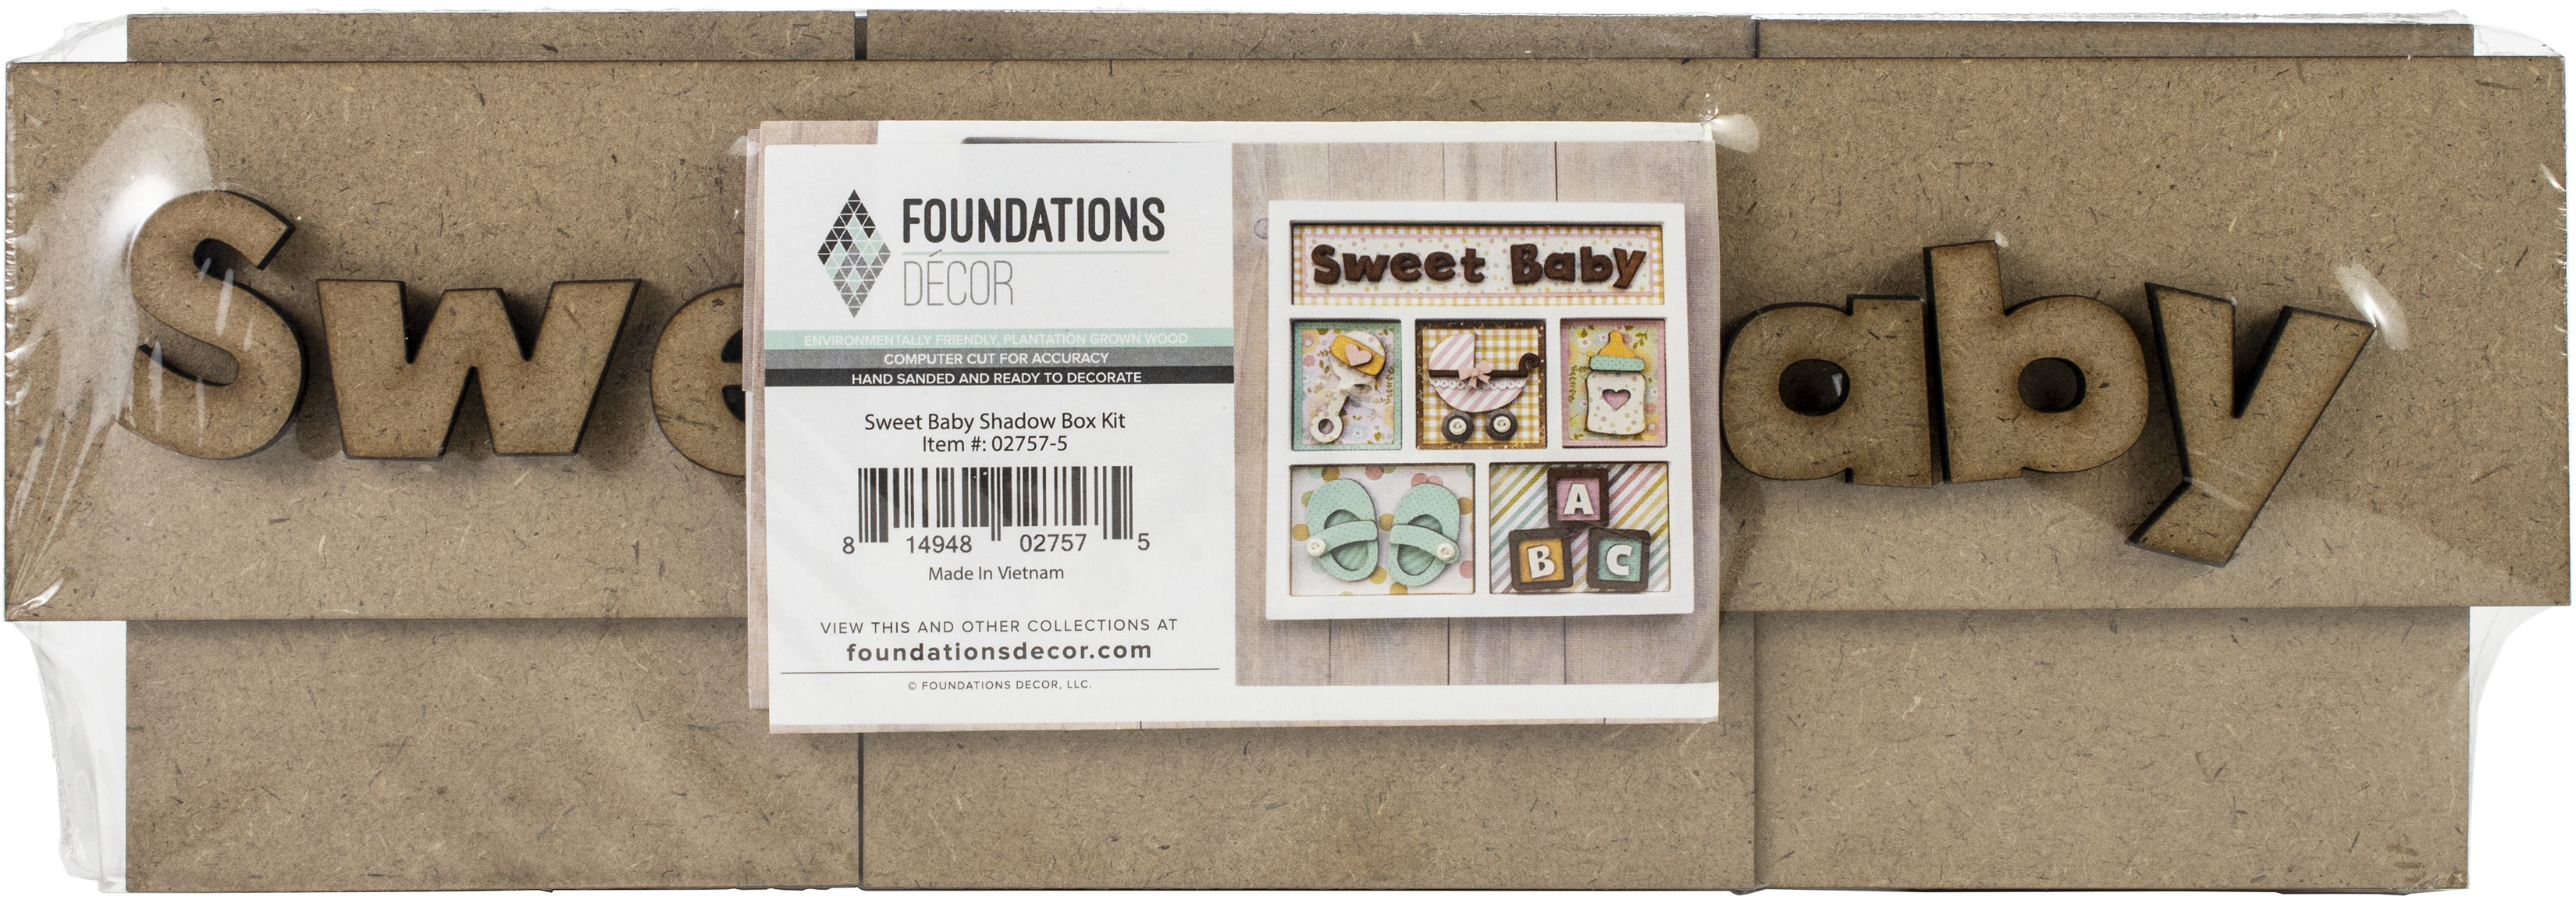 Foundations Decor Shadow Box Kit-Sweet Baby